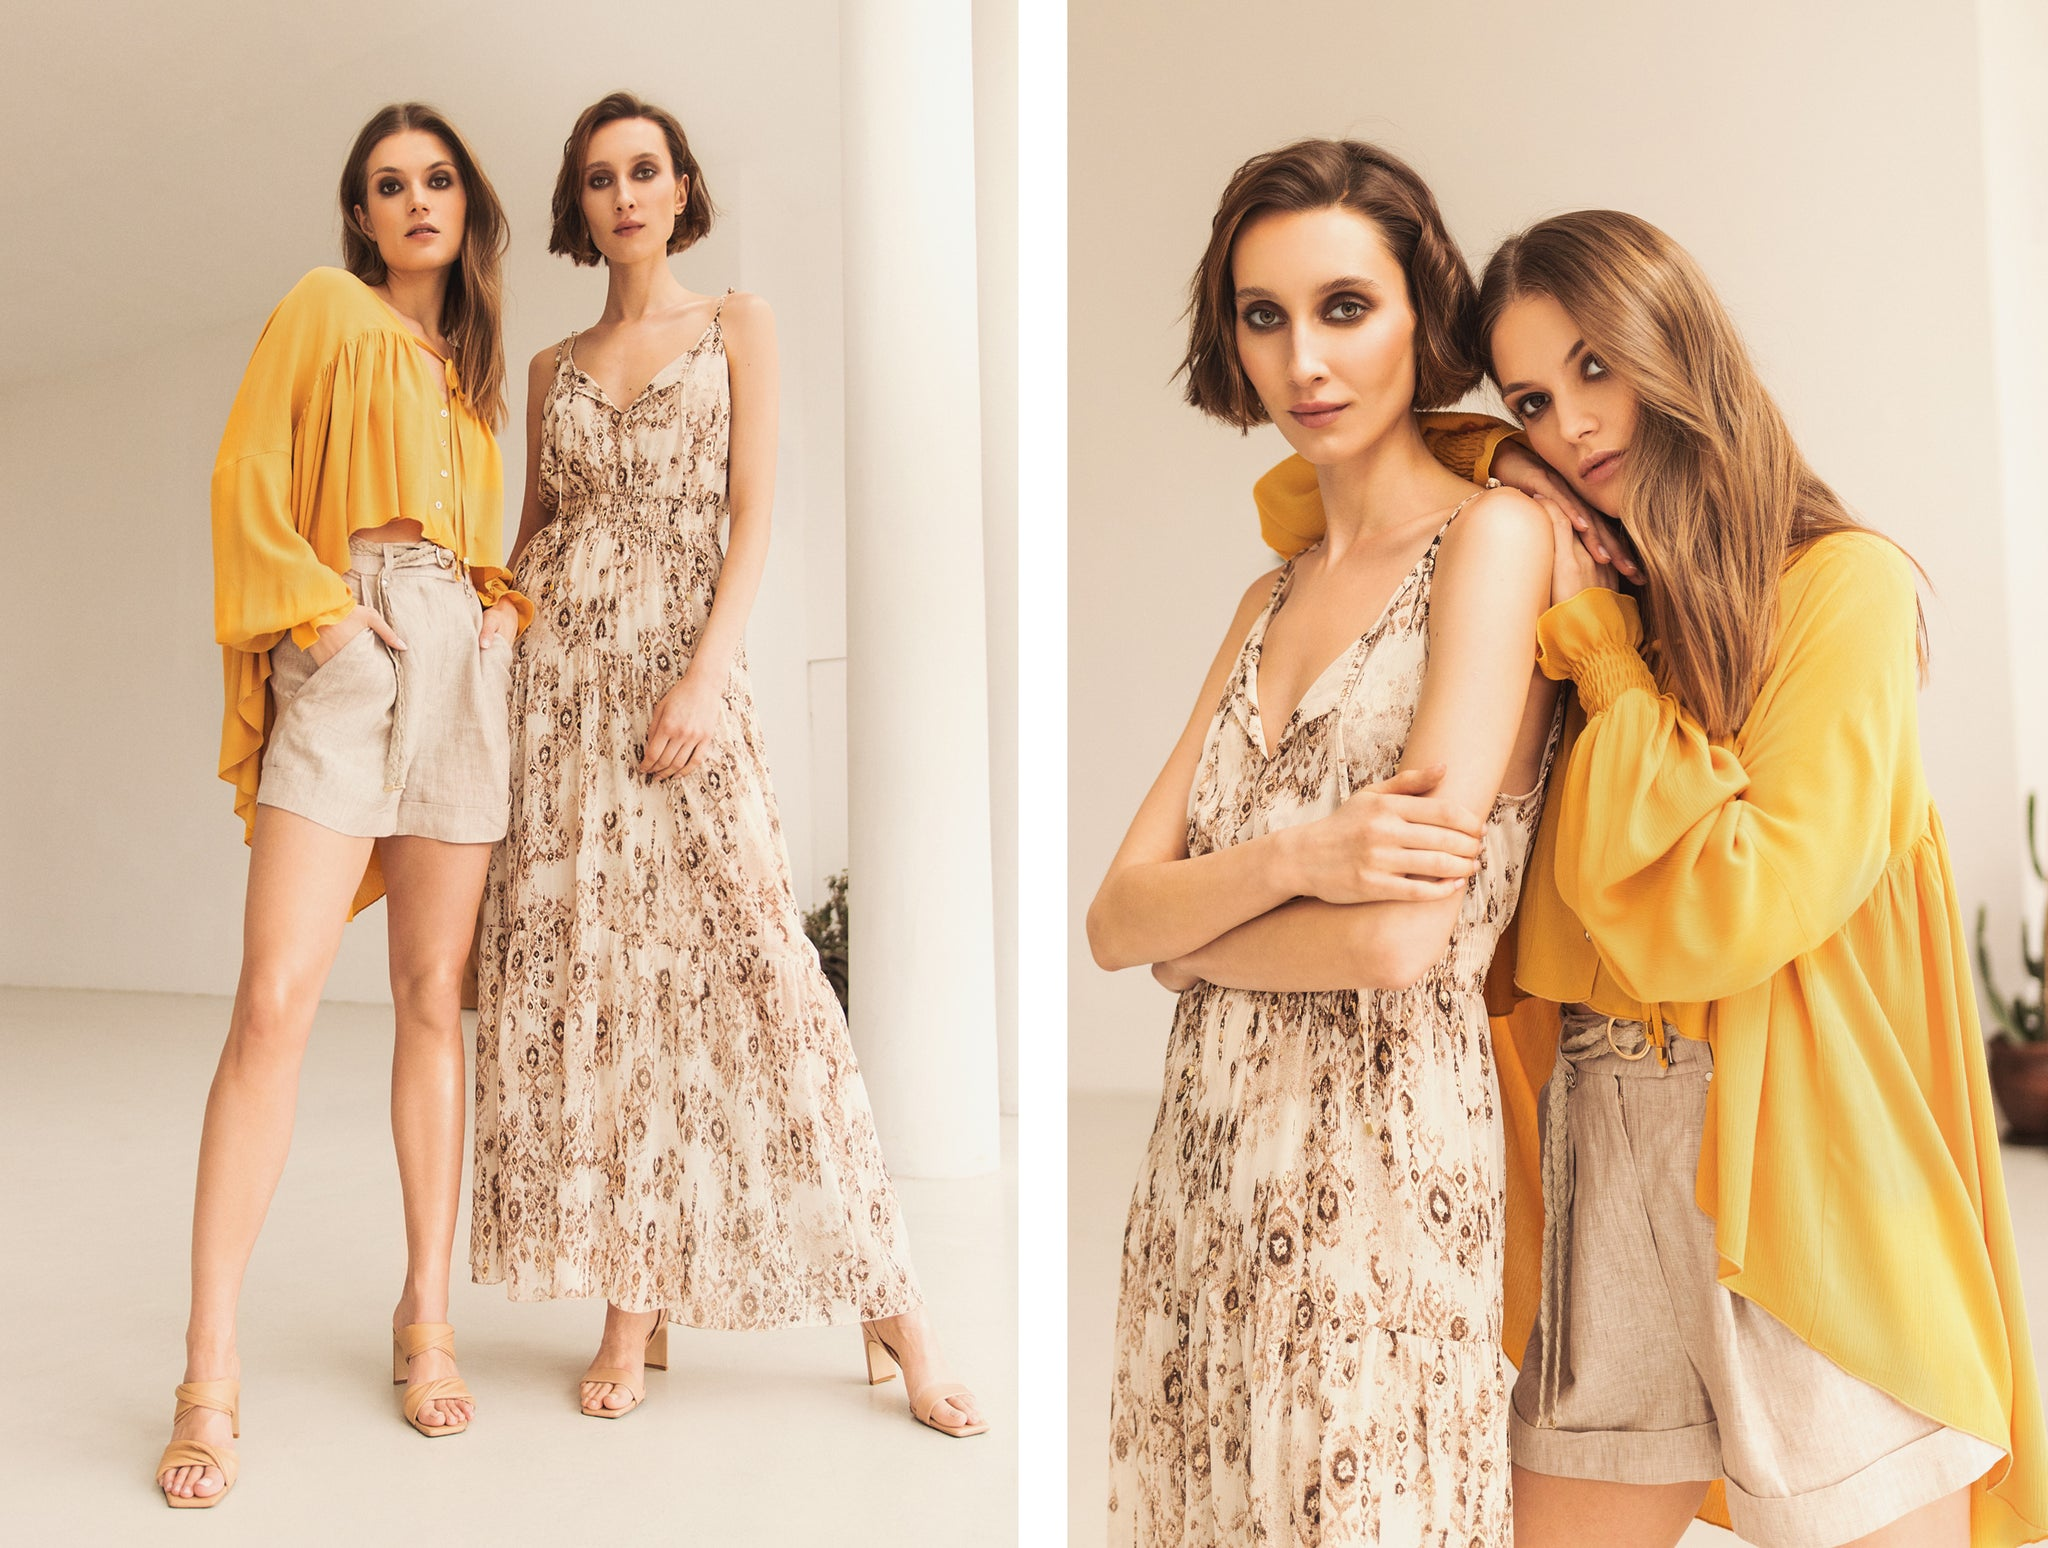 otthie by angelika jozefczyk campaign spring summer 2021 7